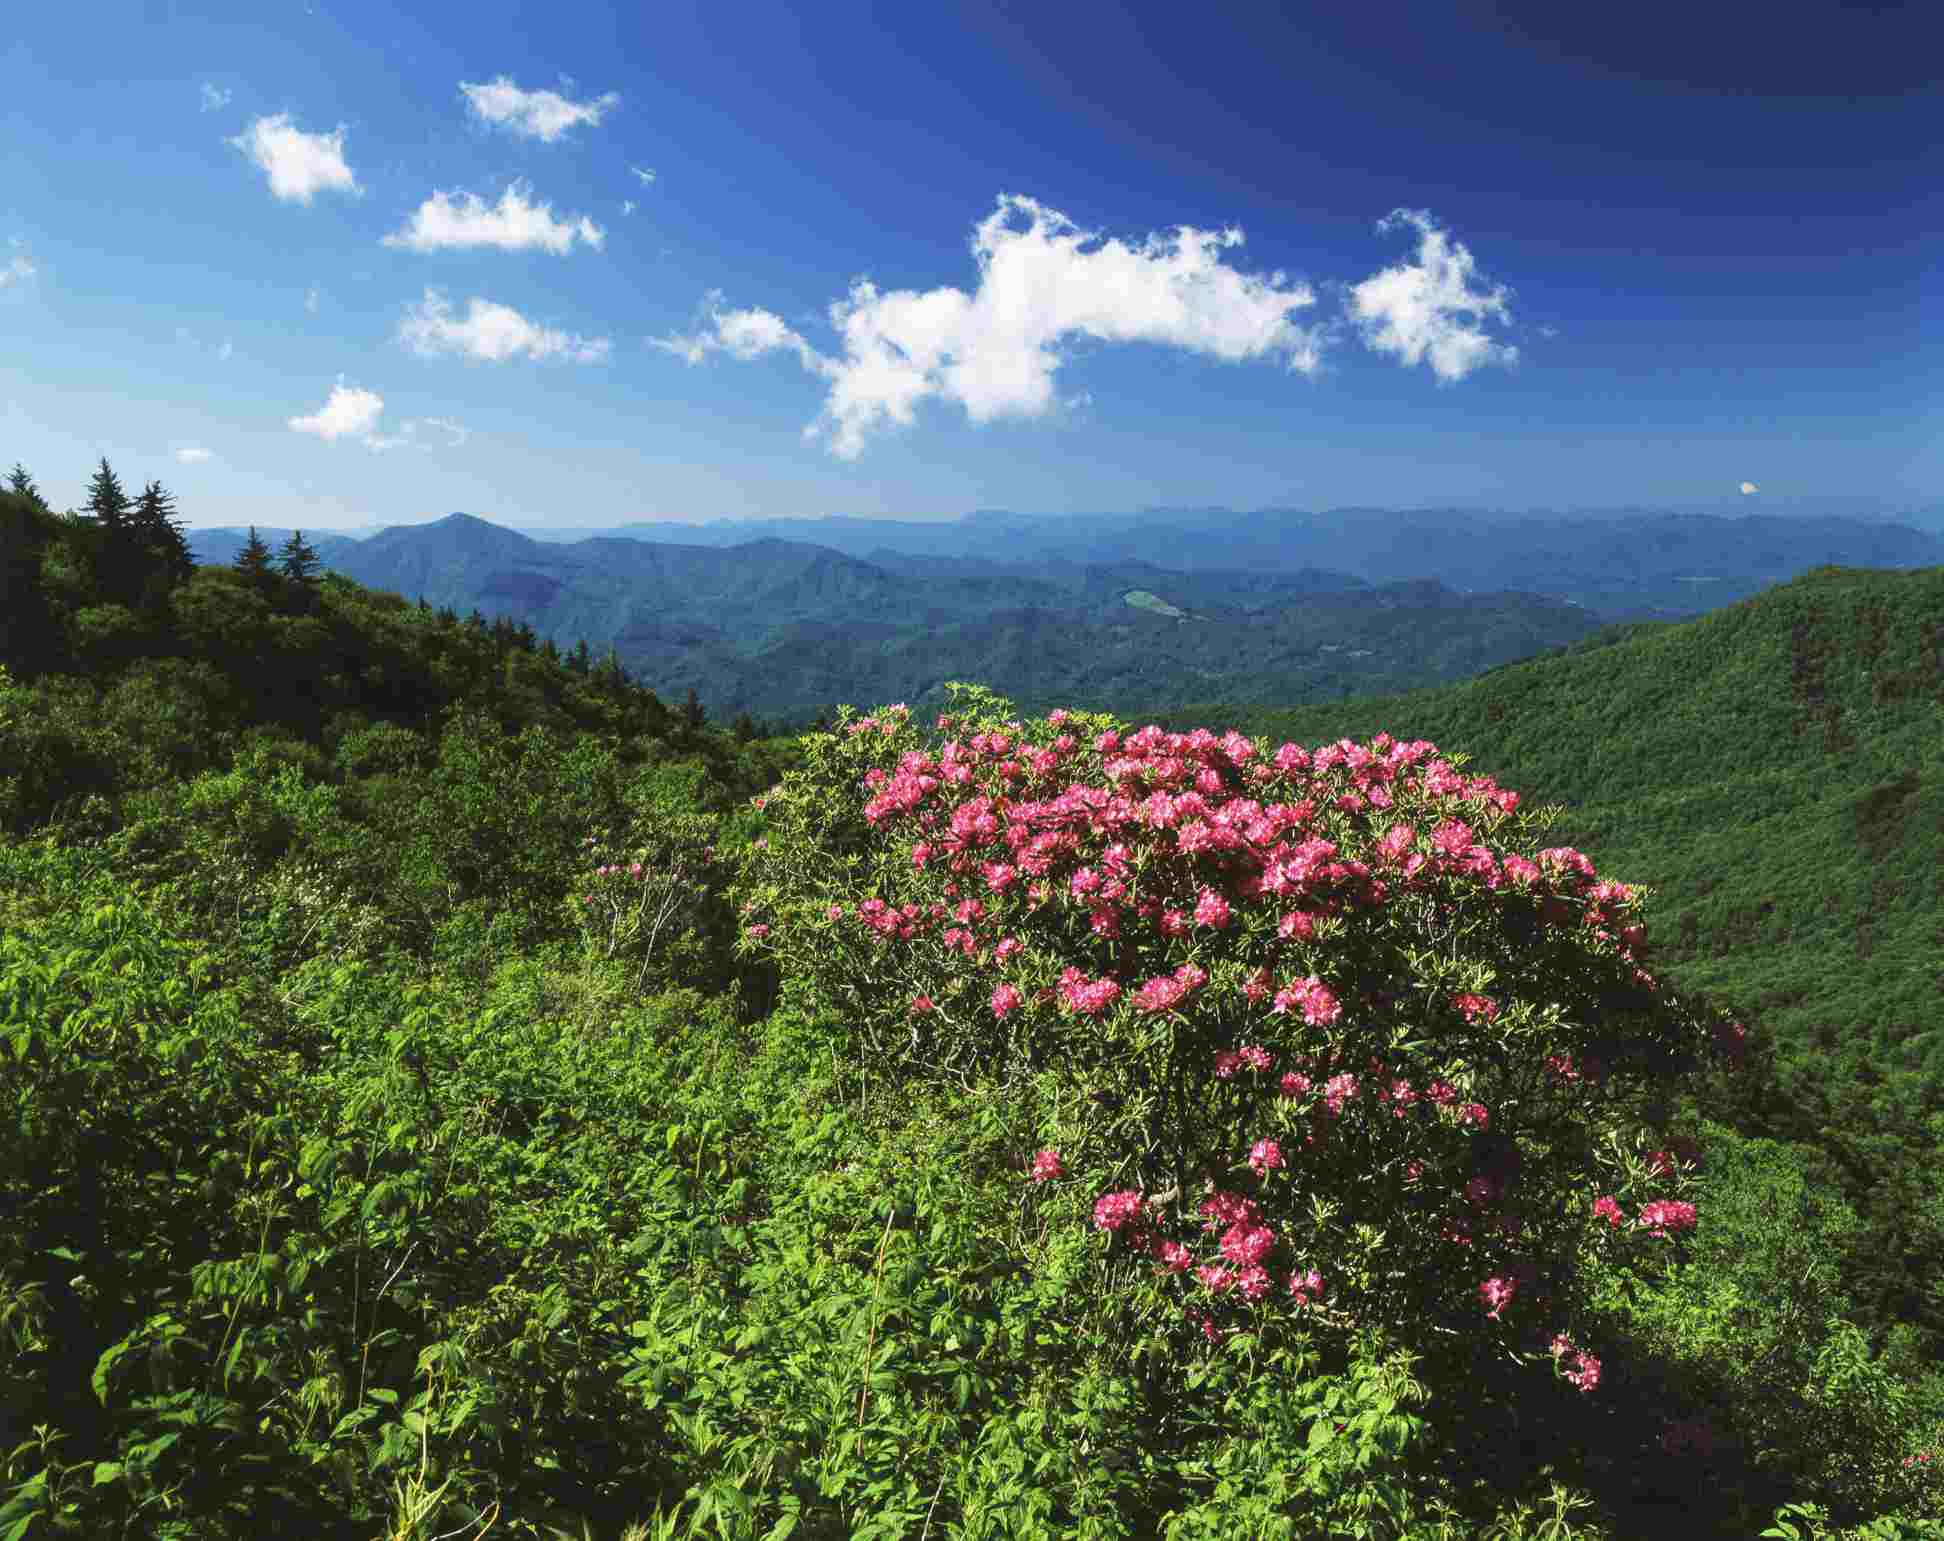 Pisgah National Forest in North Carolina